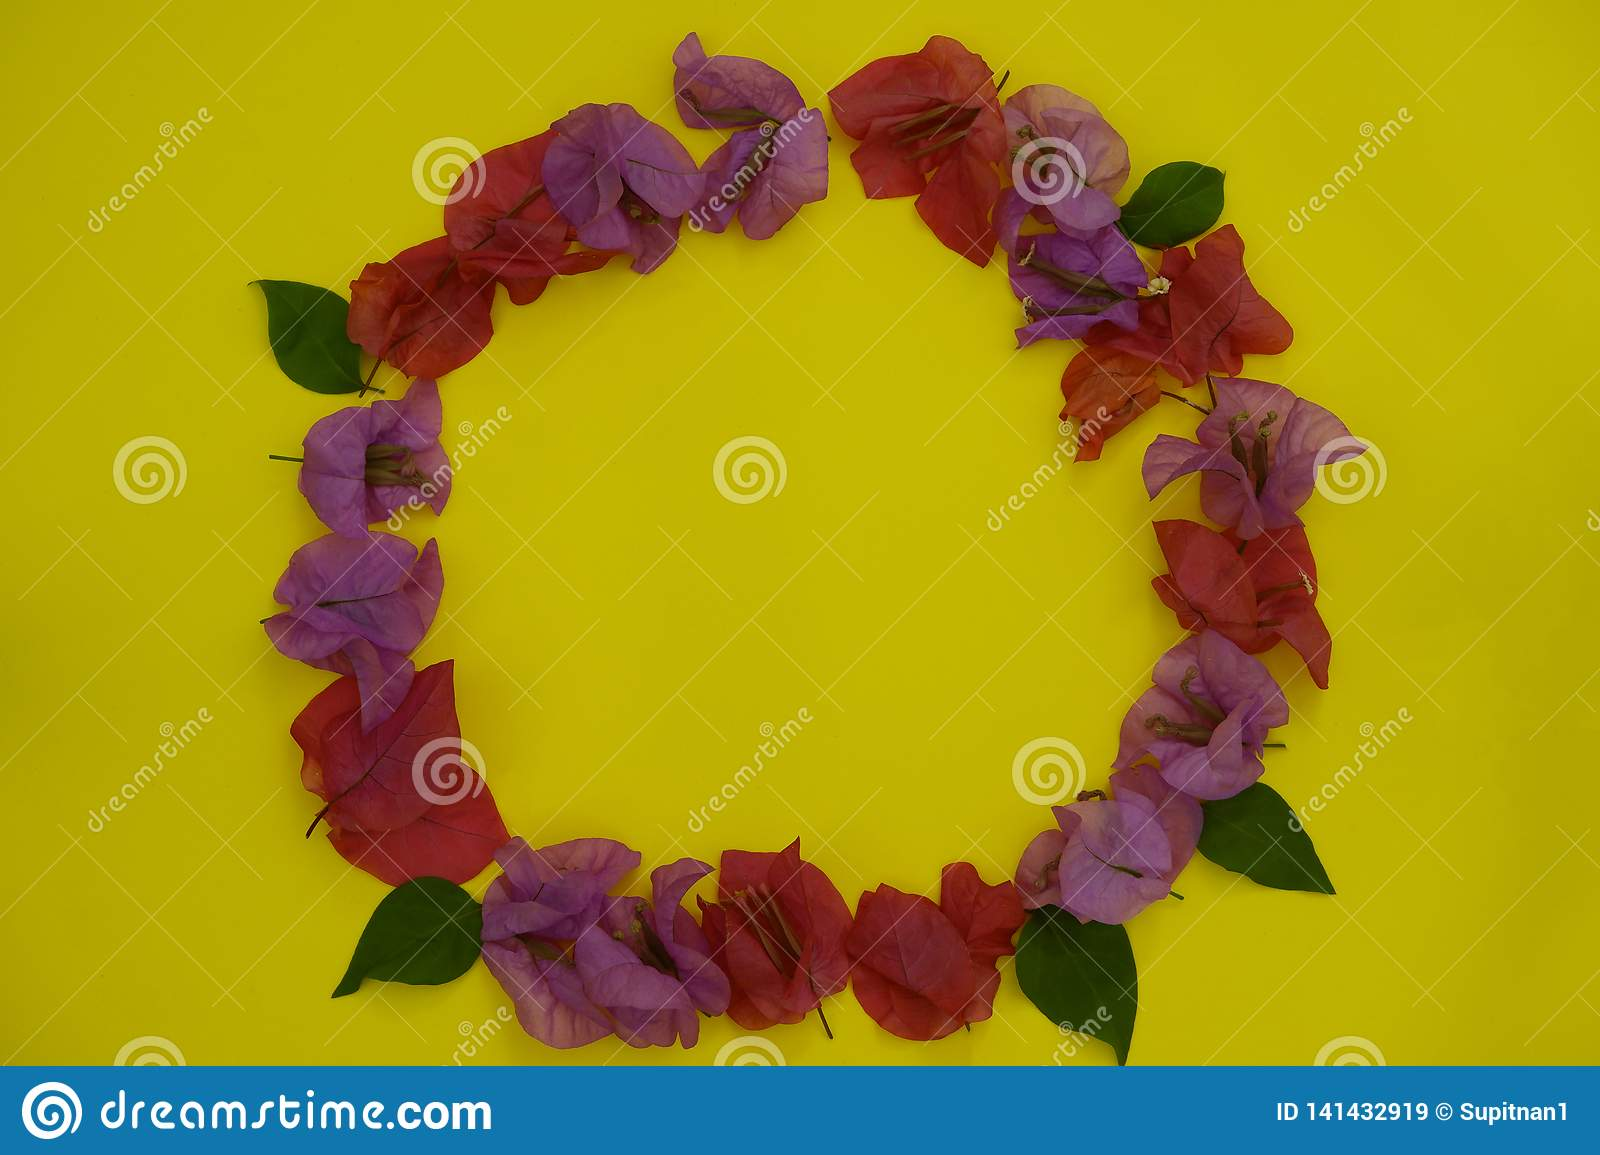 Flower composition. Frame made of fresh colorful flowers on yellow background. Flat lay, top view, rounded